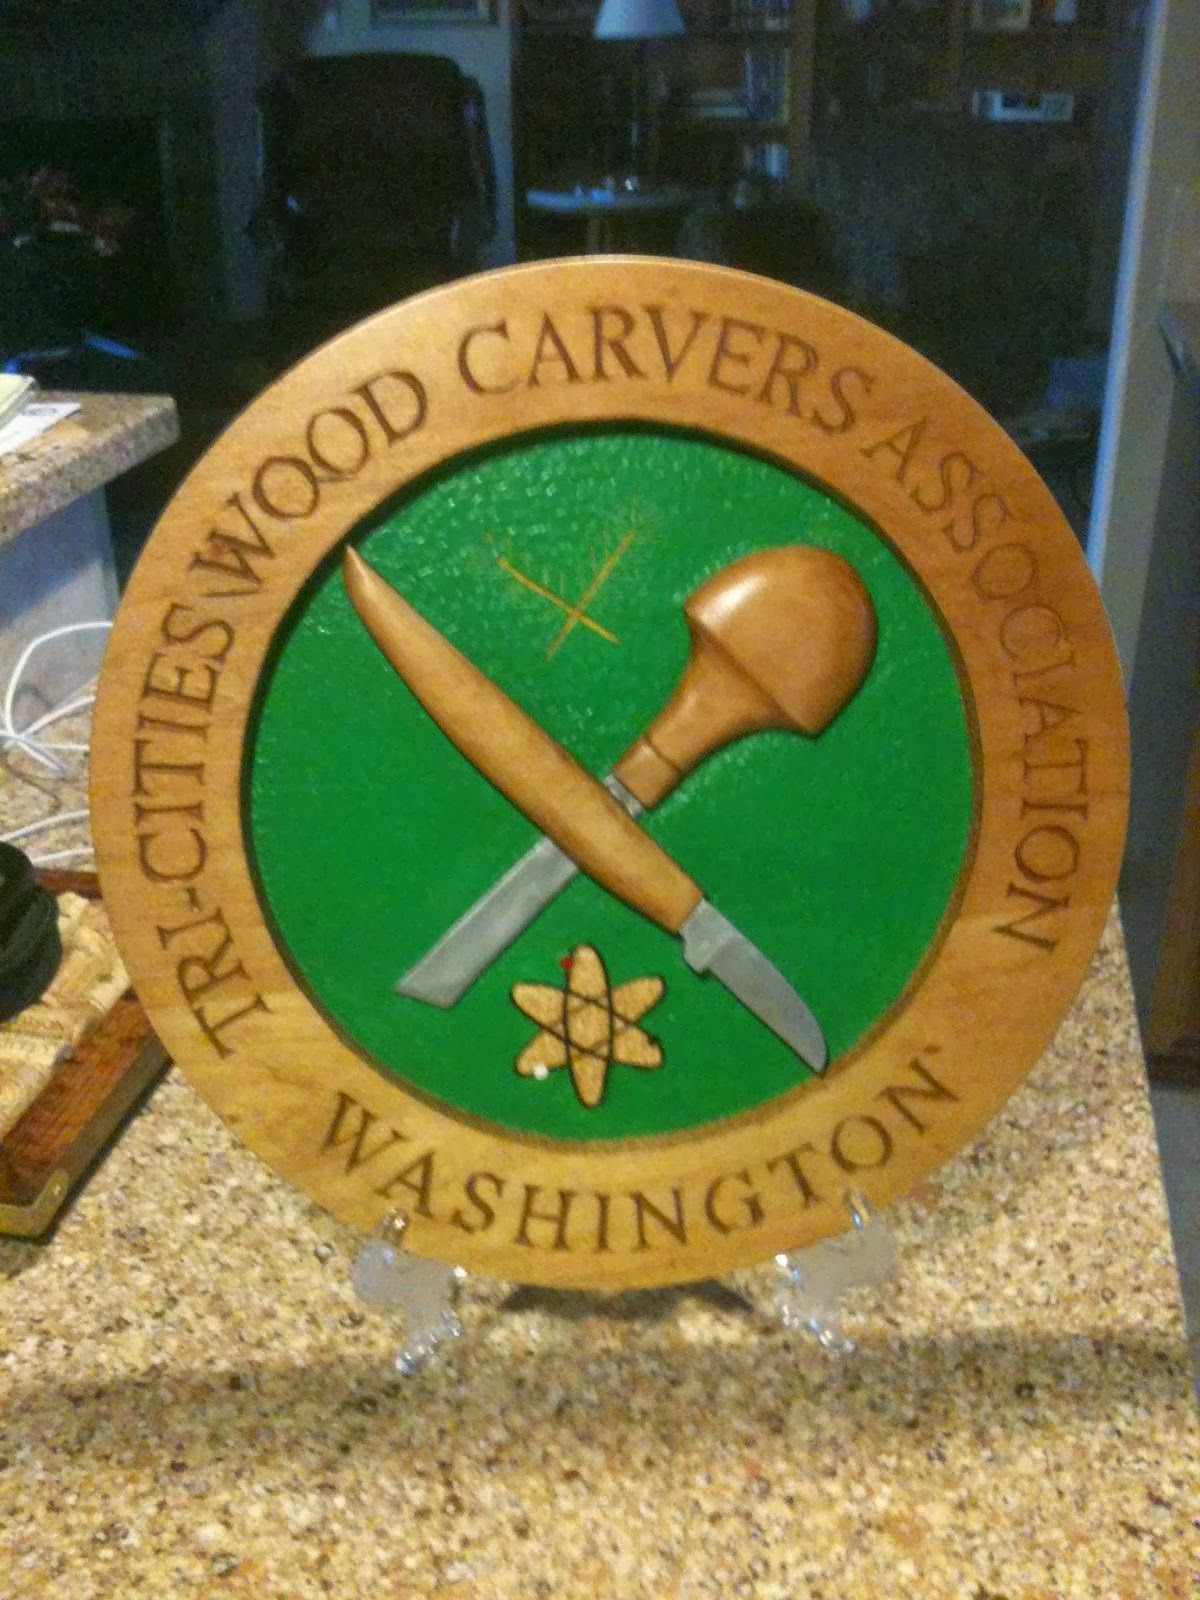 Tri-Cities Wood Carvers - Artistry In Wood Show In Kennewick, Washington